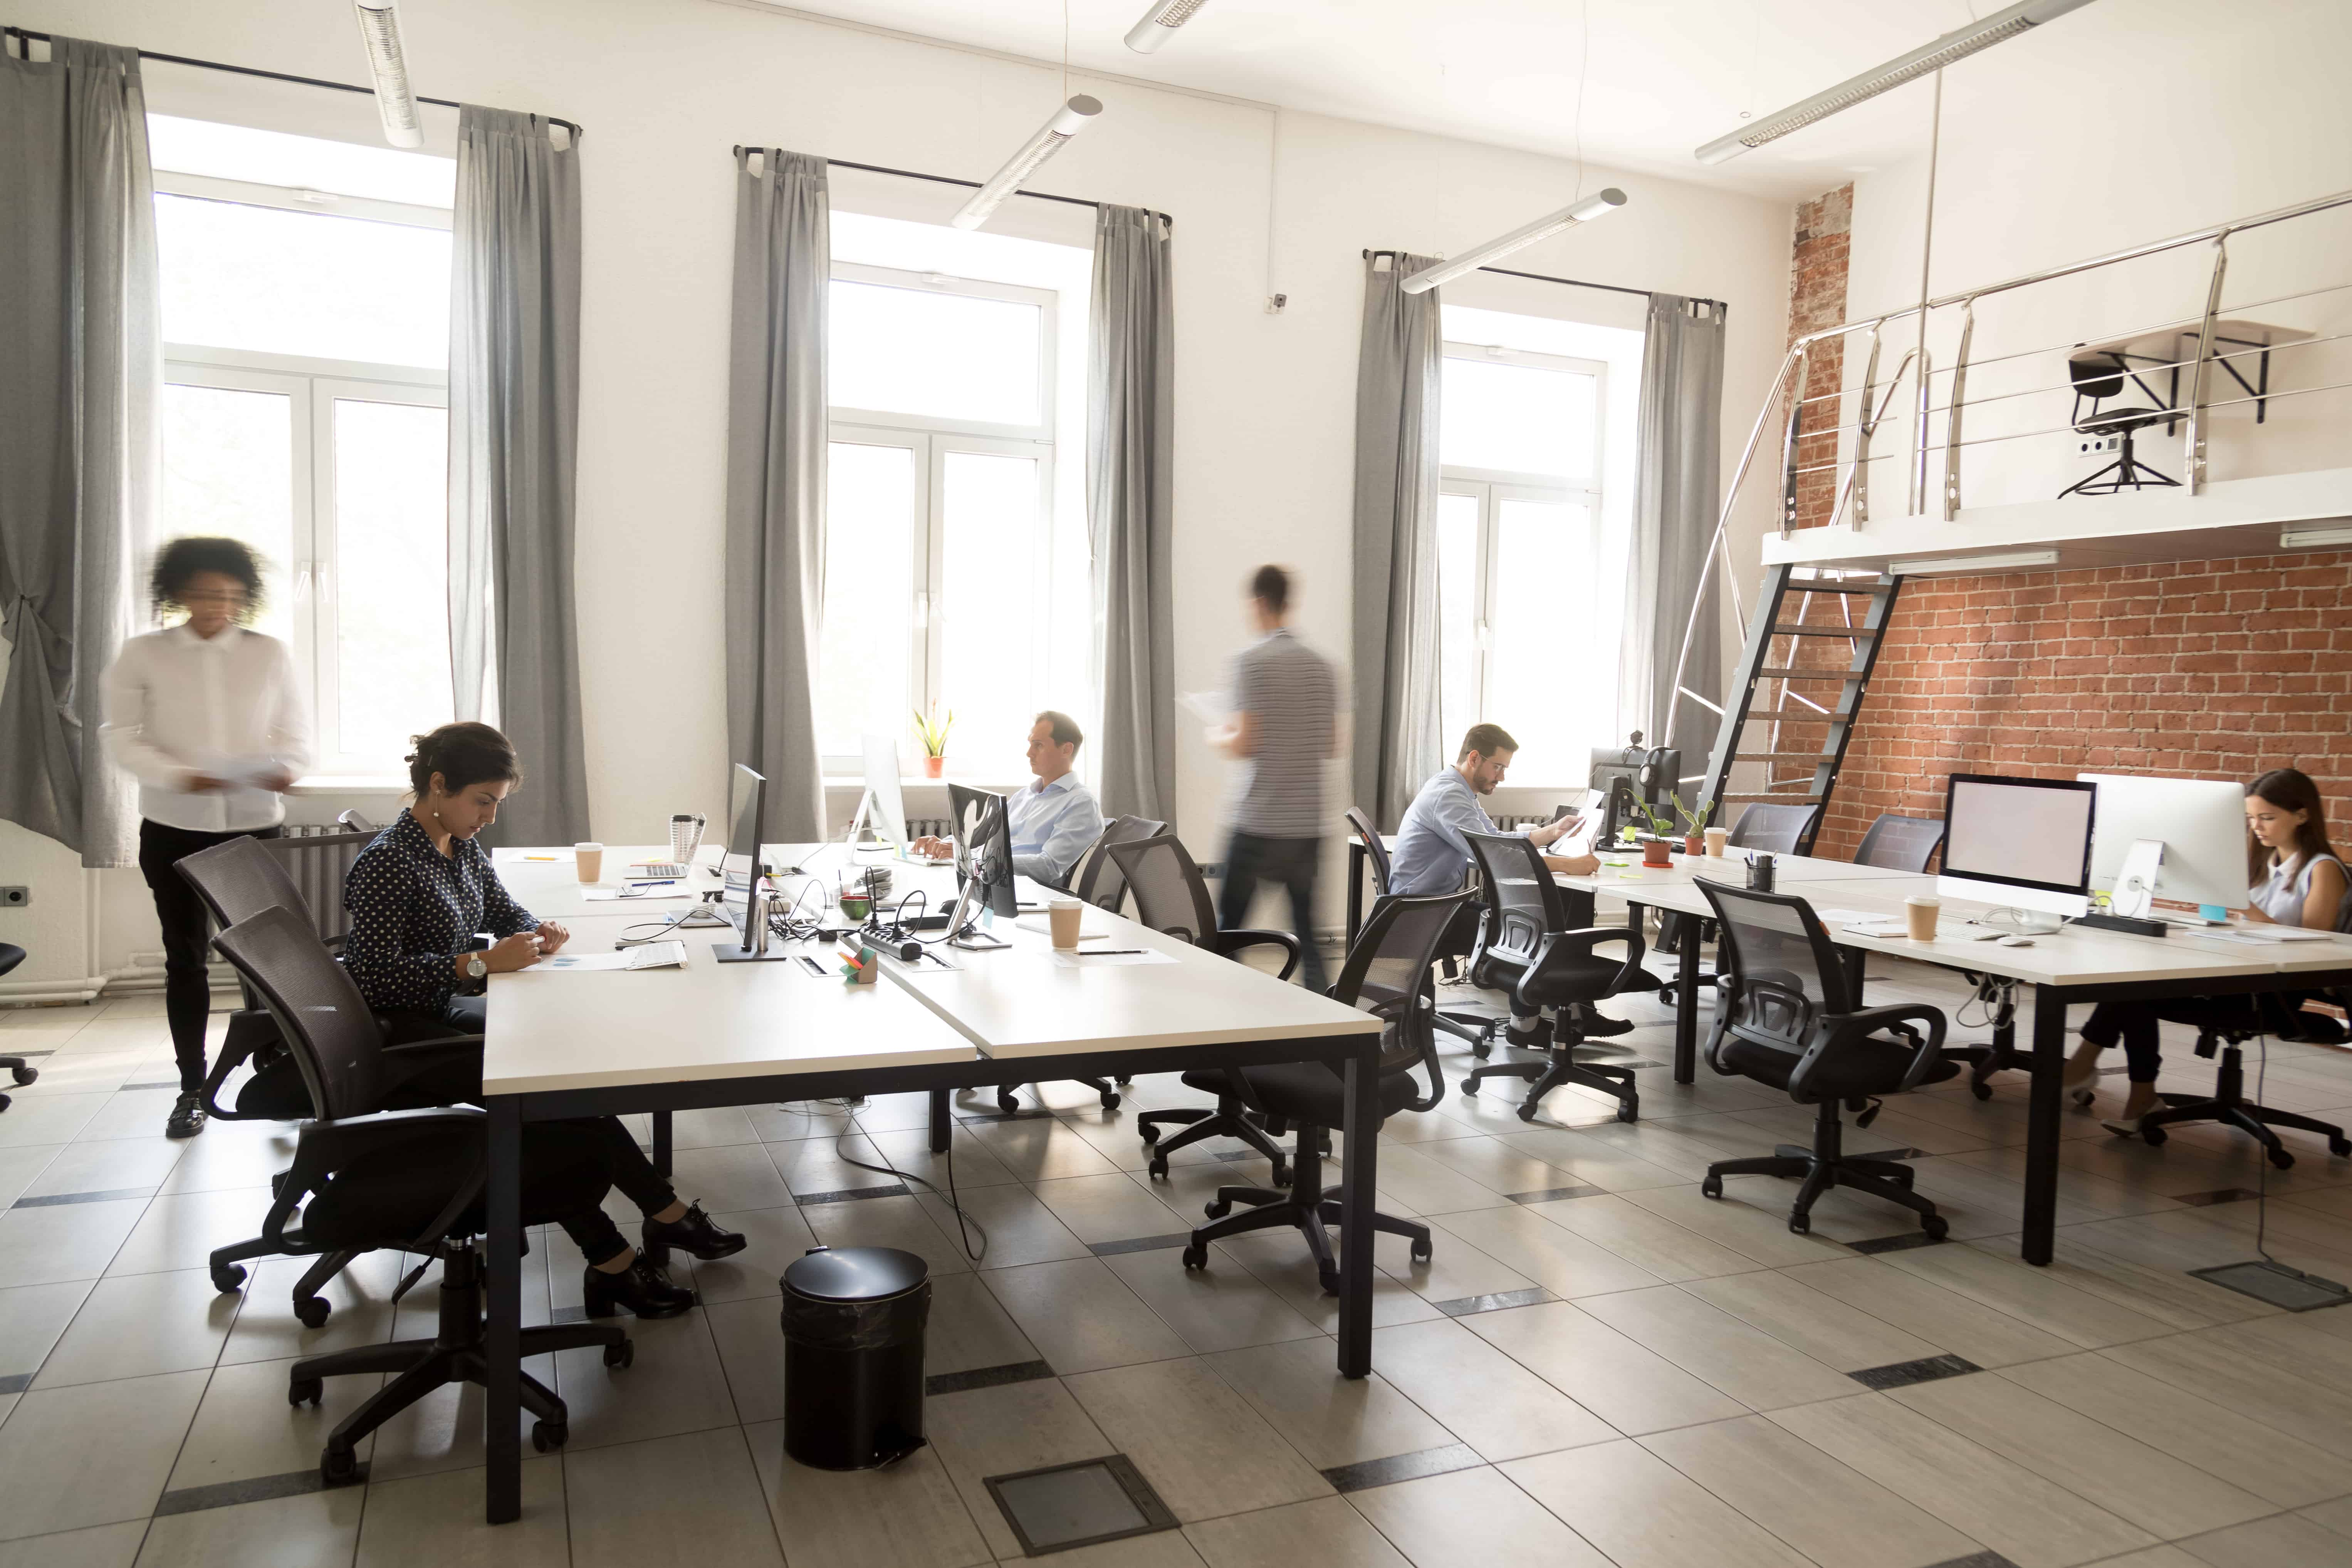 Employees in office space